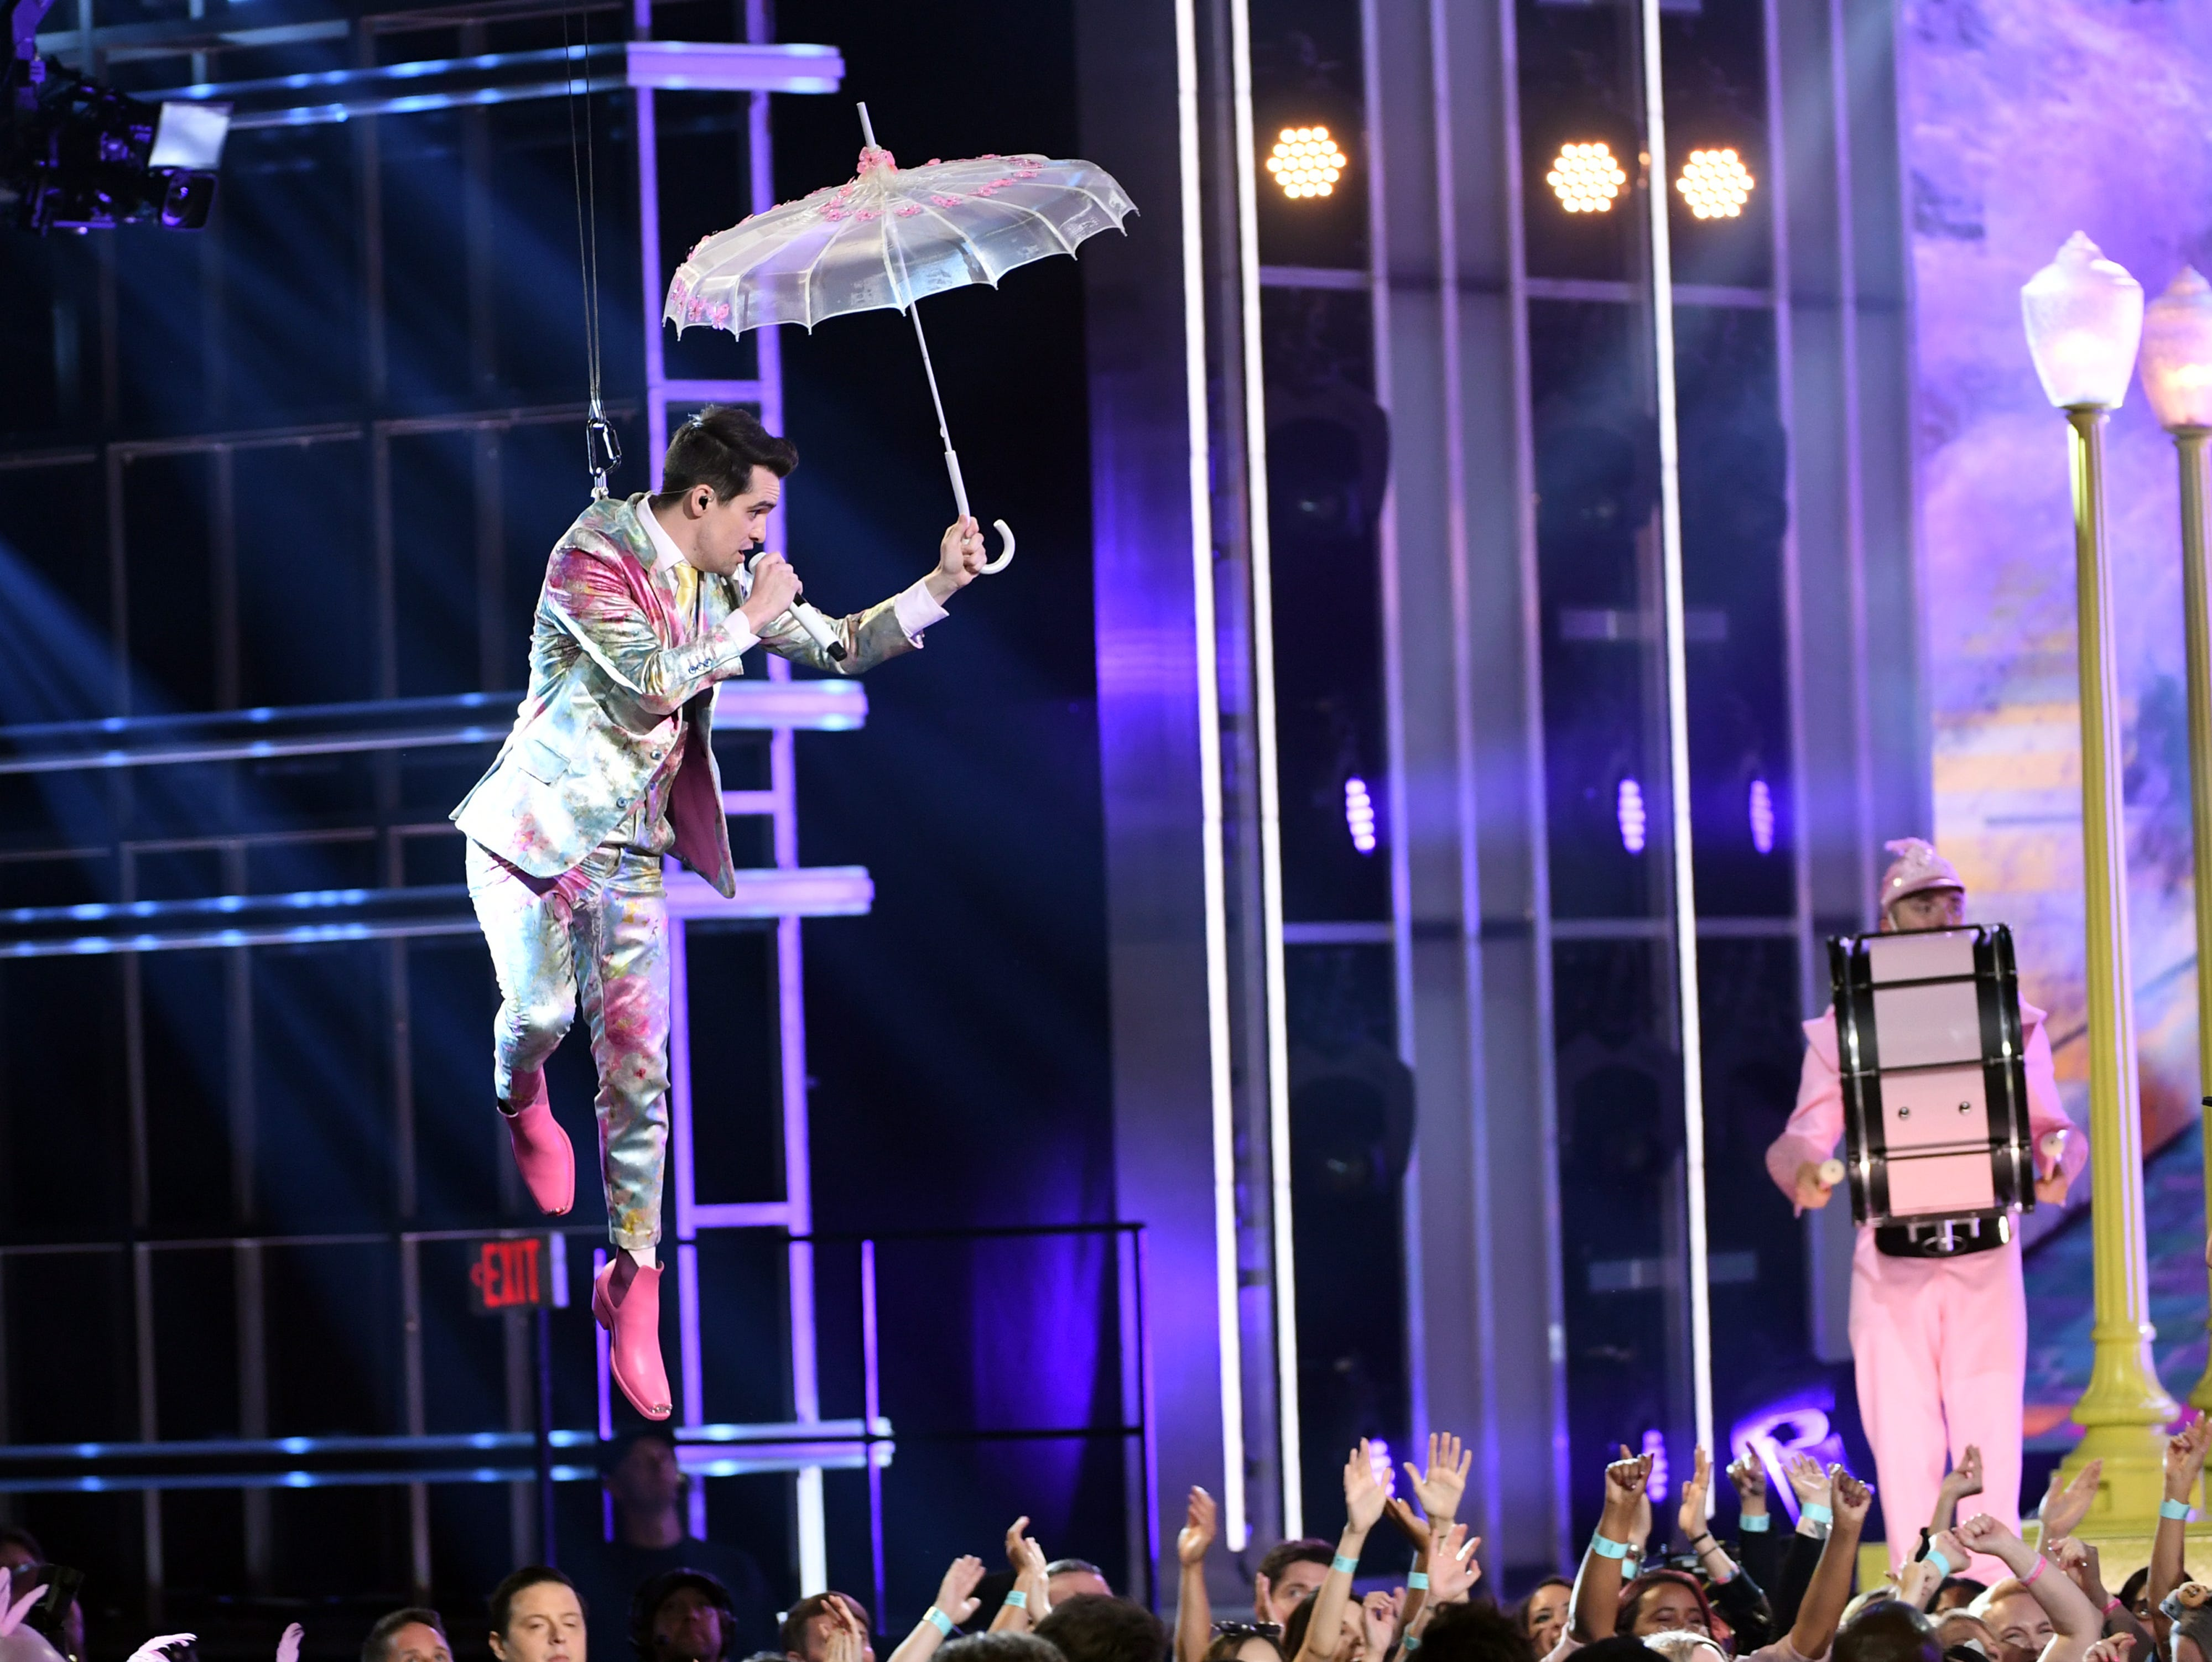 Brendon Urie of Panic! at the Disco performs onstage during the 2019 Billboard Music Awards at MGM Grand Garden Arena on May 01, 2019 in Las Vegas, Nevada.